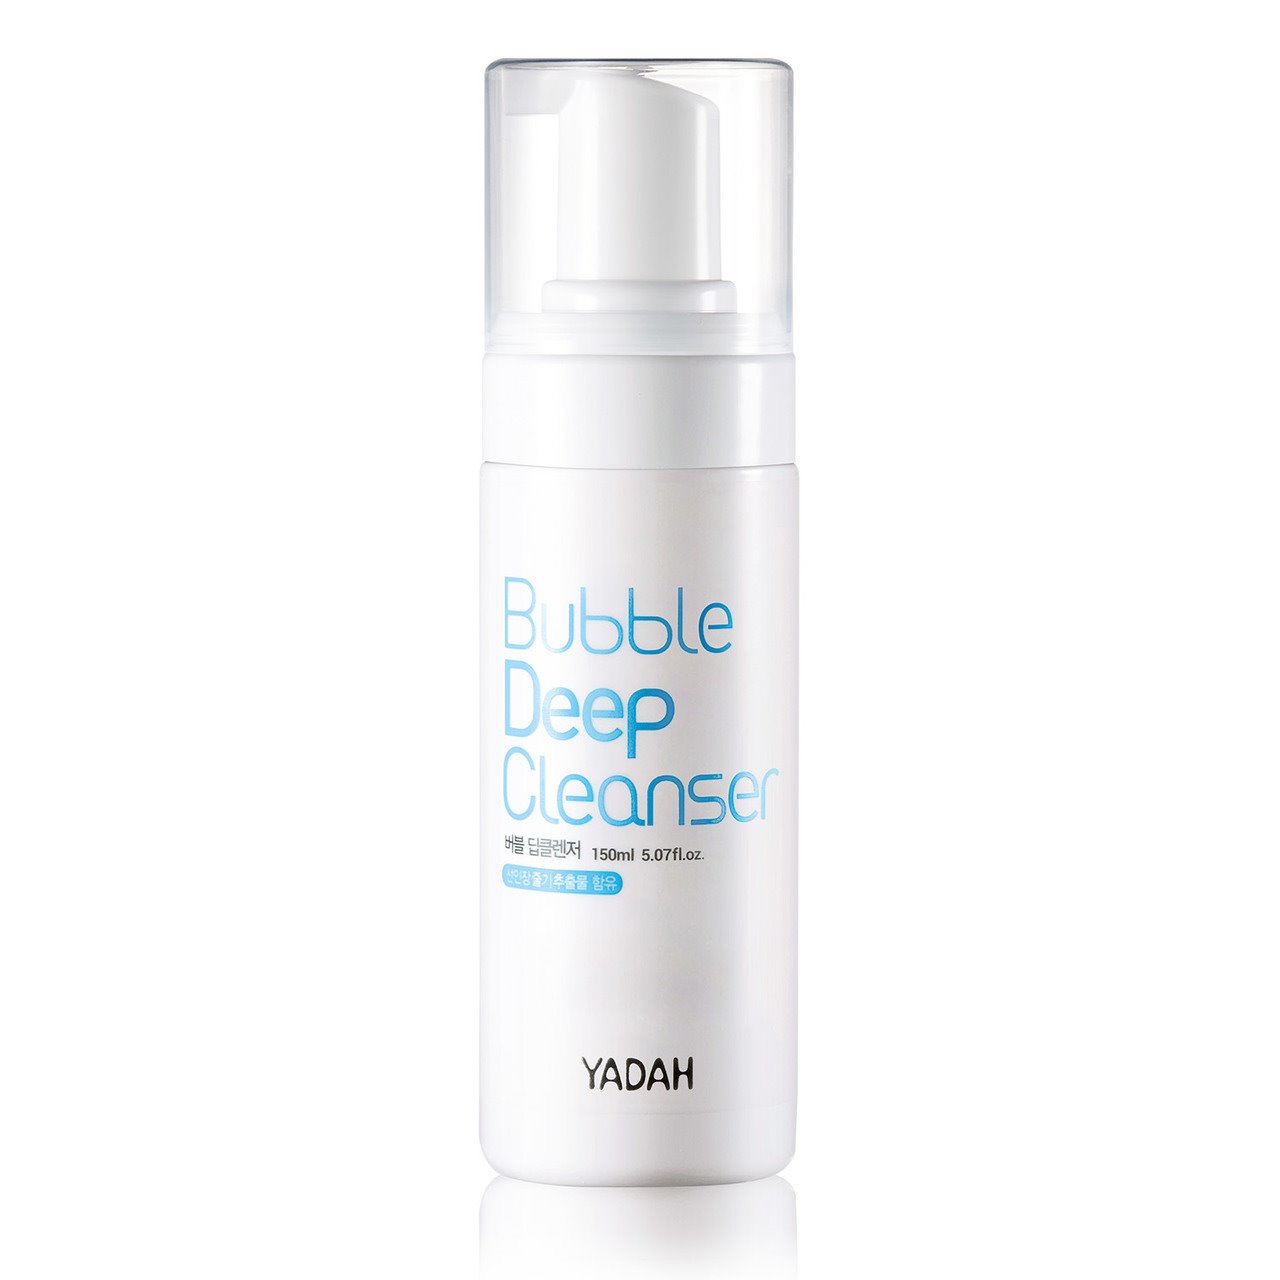 Пенка кислородная для лица YADAH BUBBLE DEEP CLEANSER